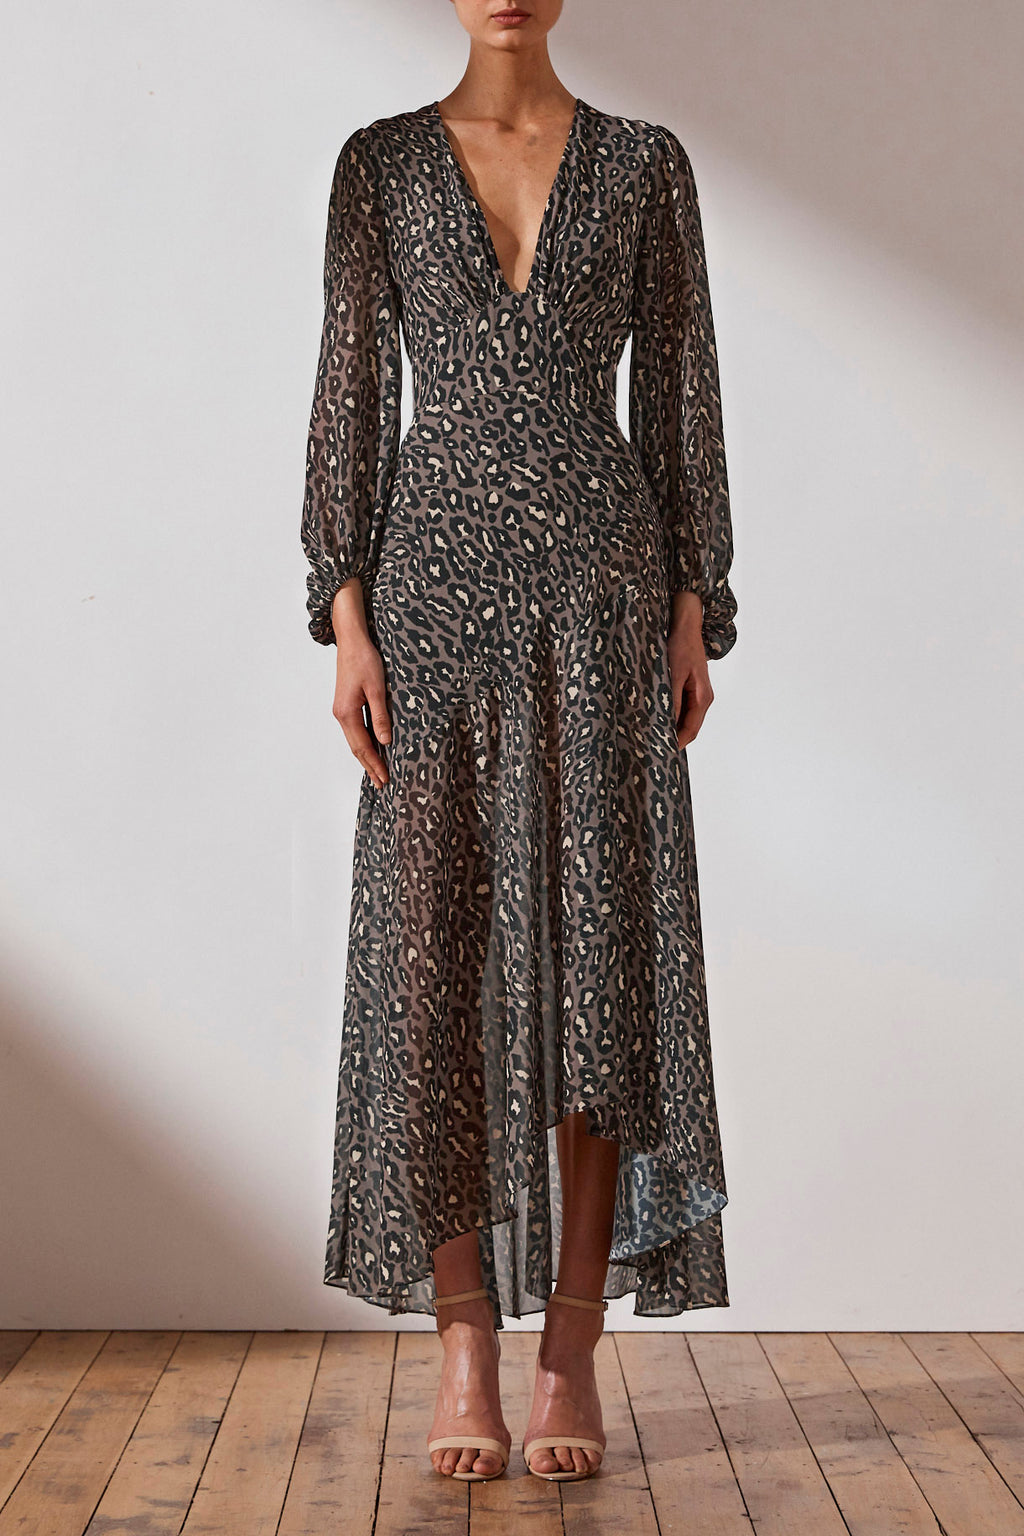 Shona Joy Plunged Midi Dress in Leopard/Olive